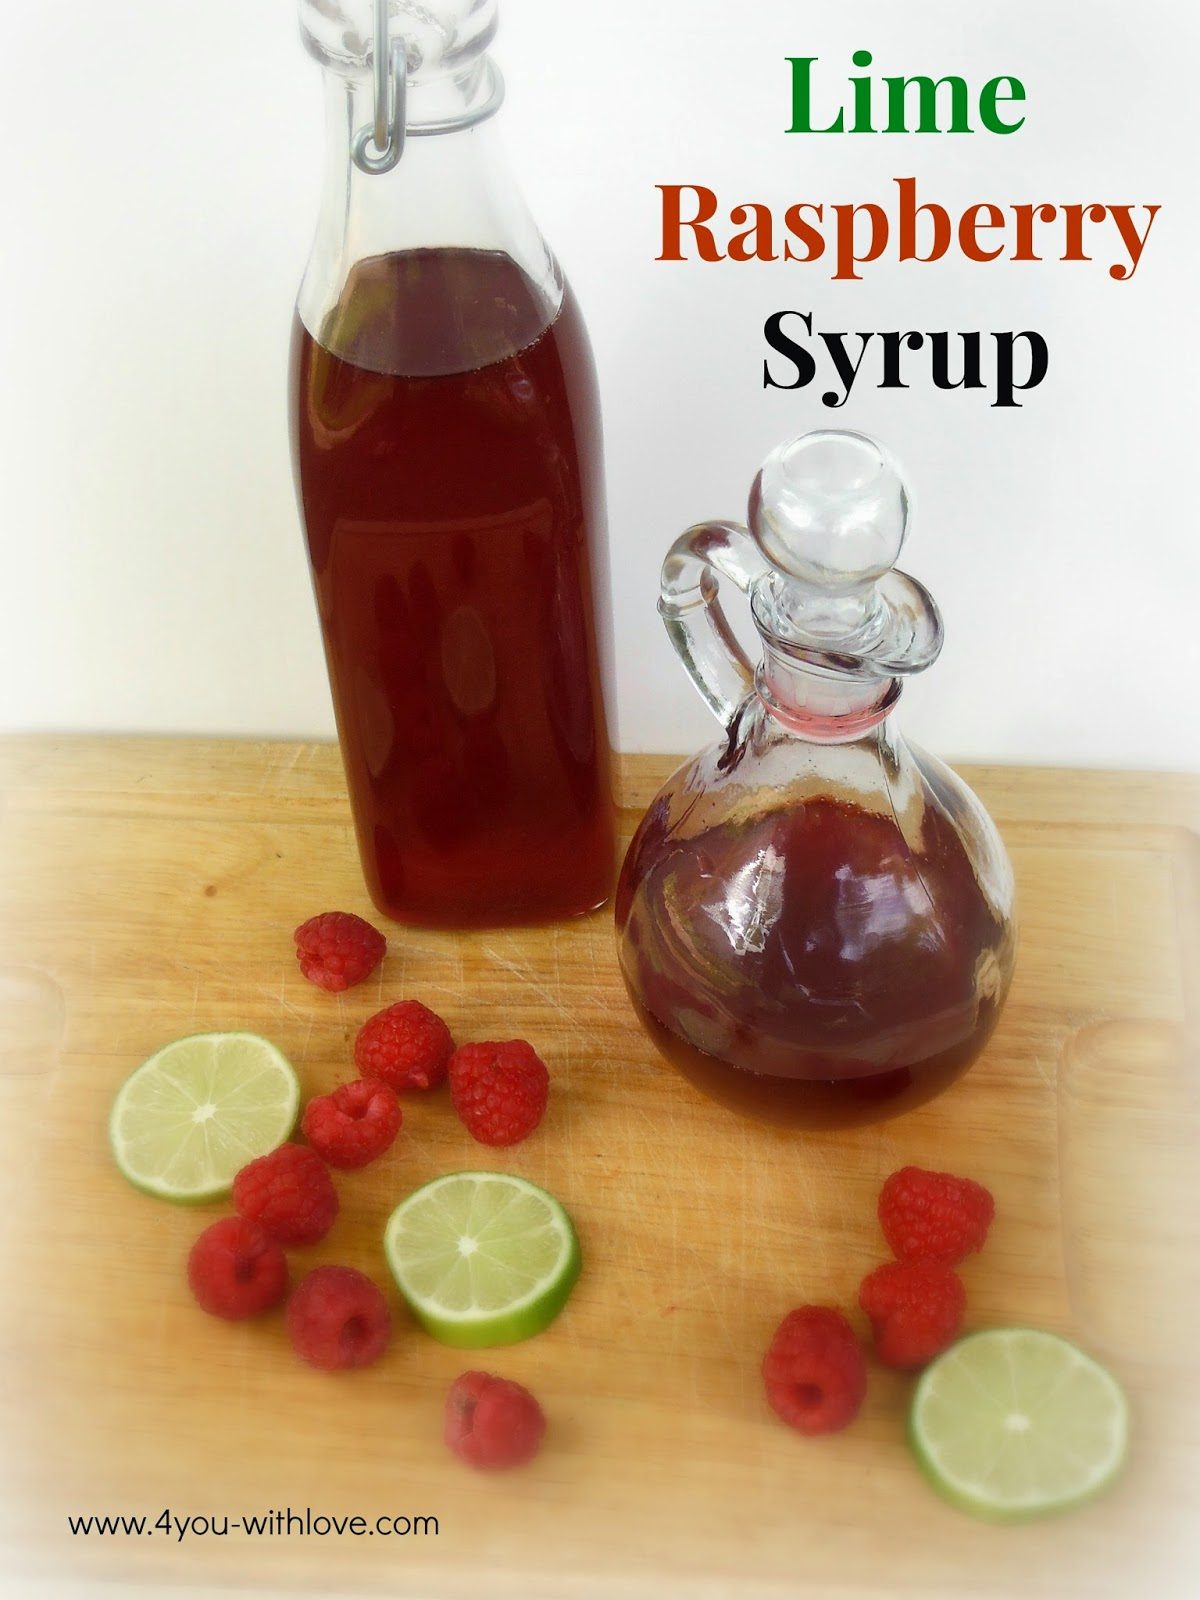 Make Your Own Lime Raspberry Syrup